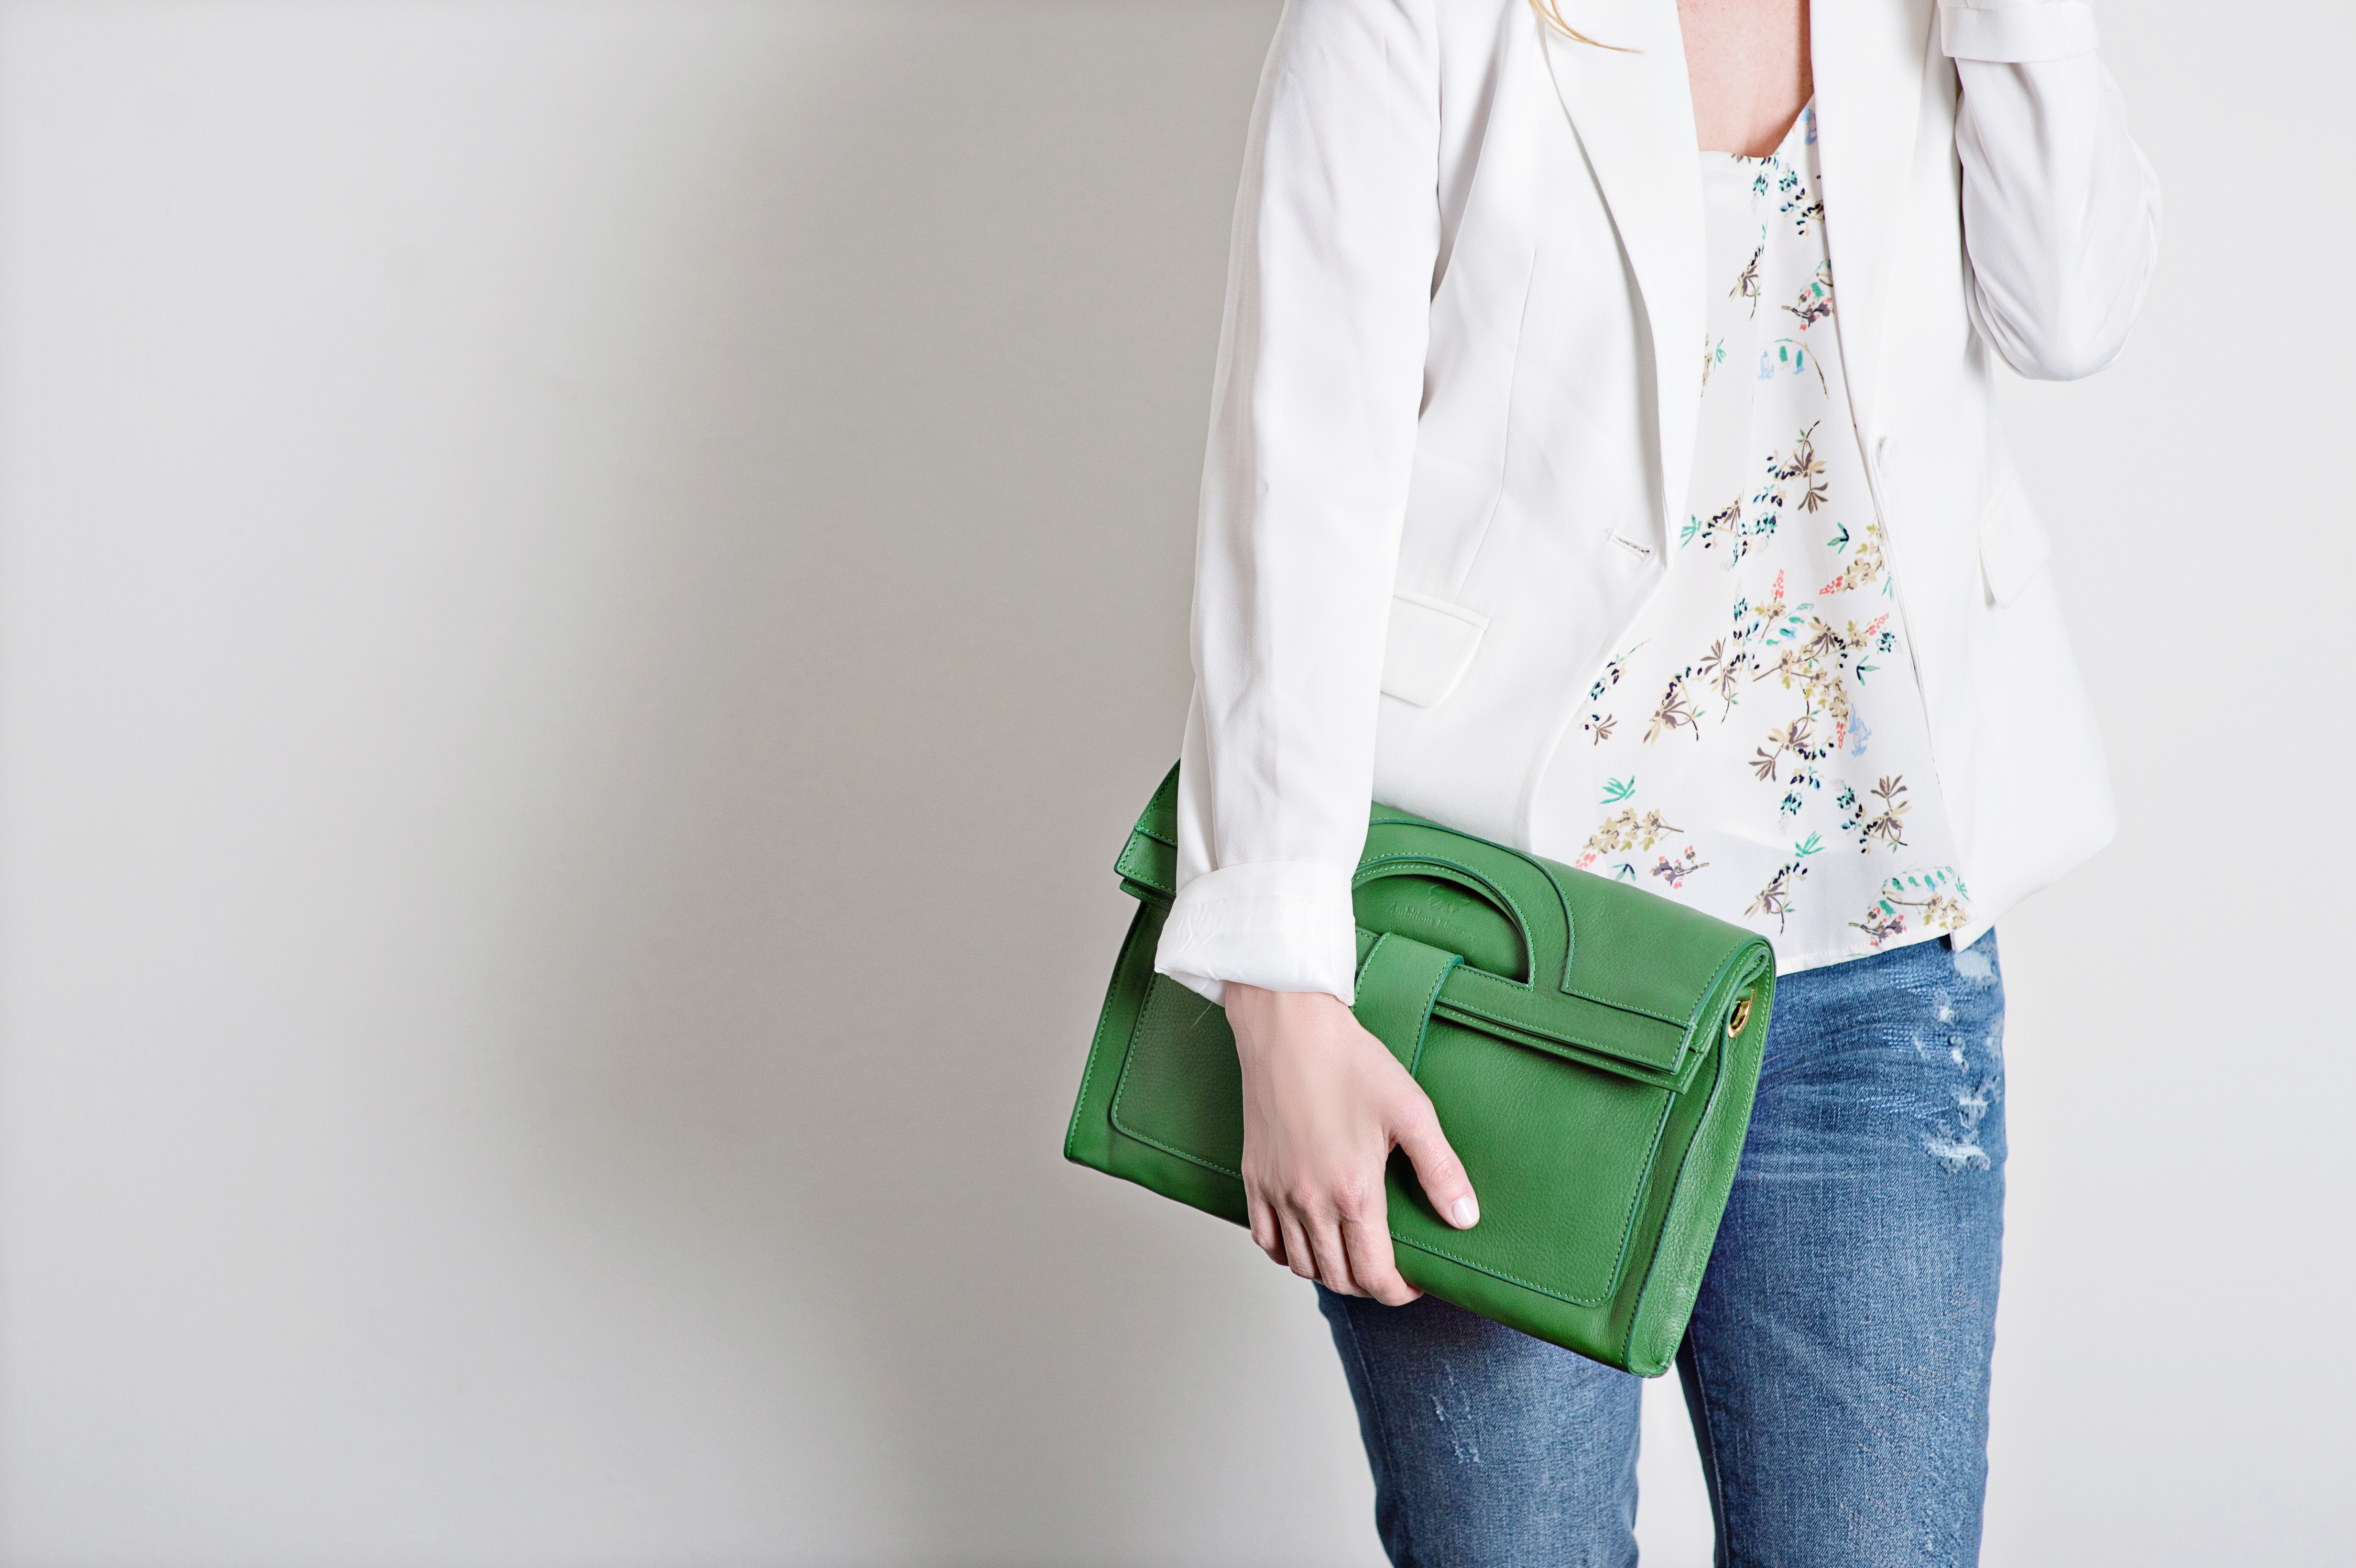 Wynnewood-based designer, Maddalena Palermo´s Madda & Co. clutch is the perfect Super Bowl to spring transition piece.